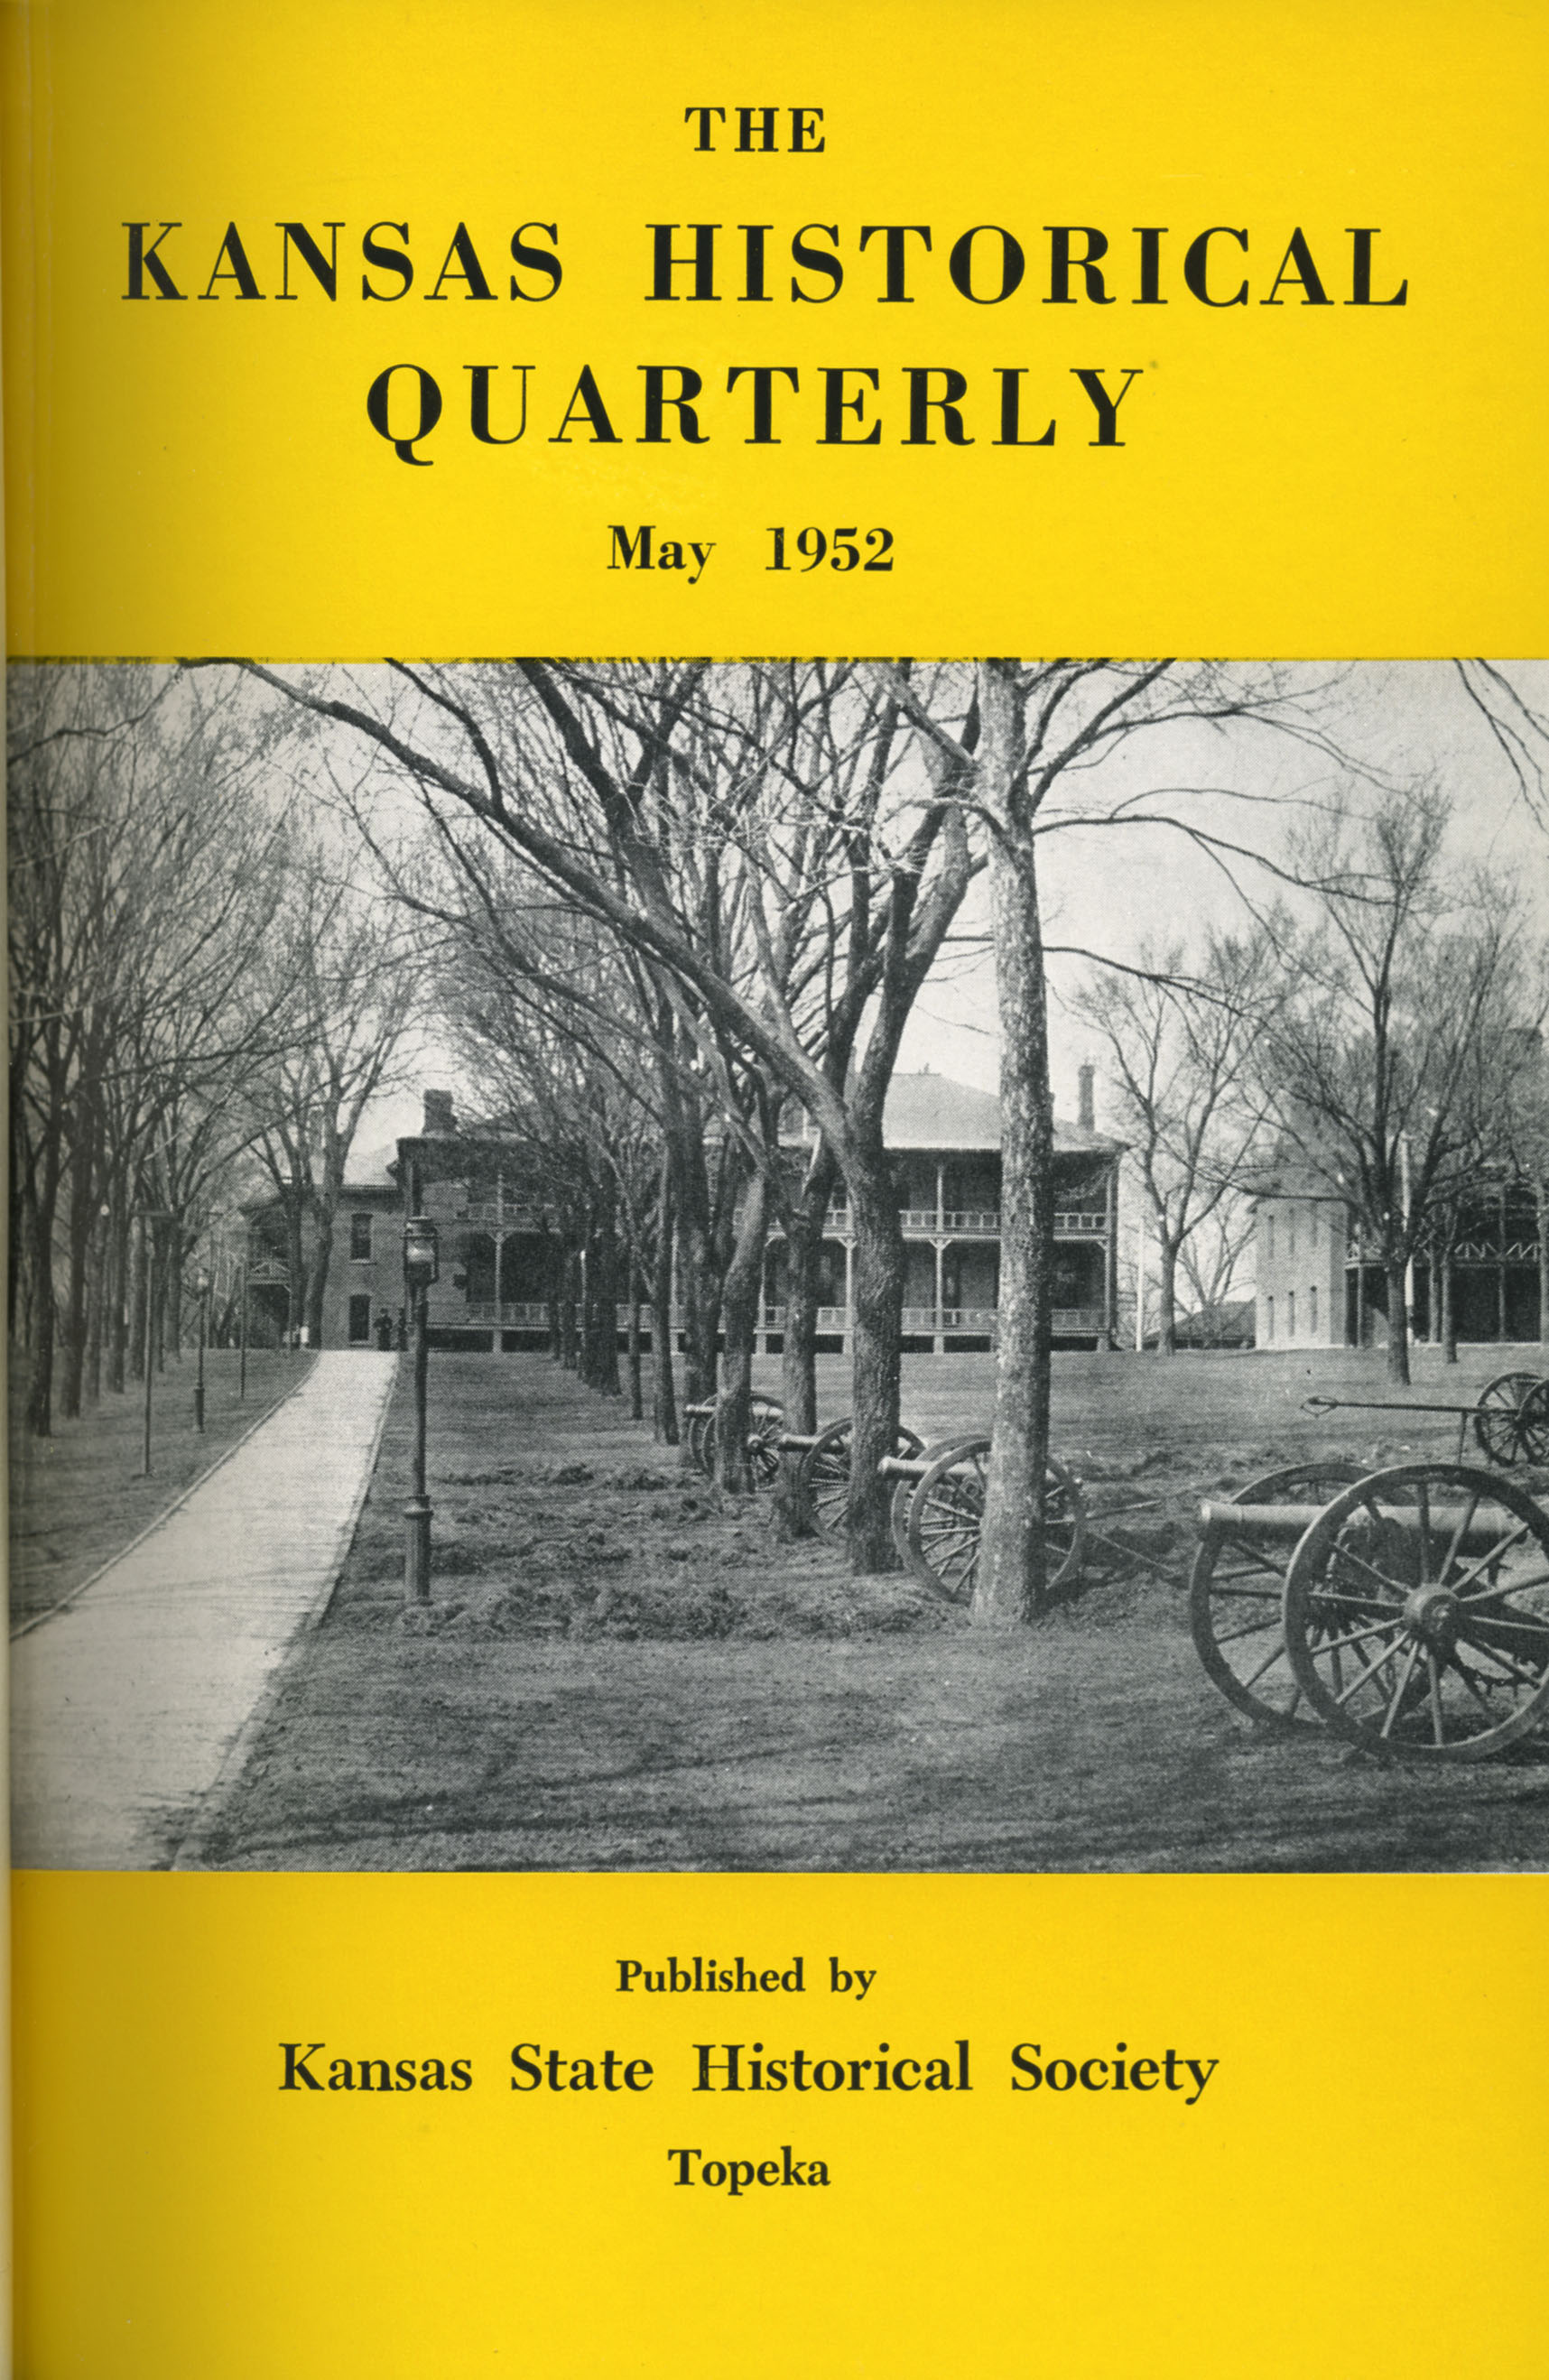 Kansas Historical Quarterly, May 1952